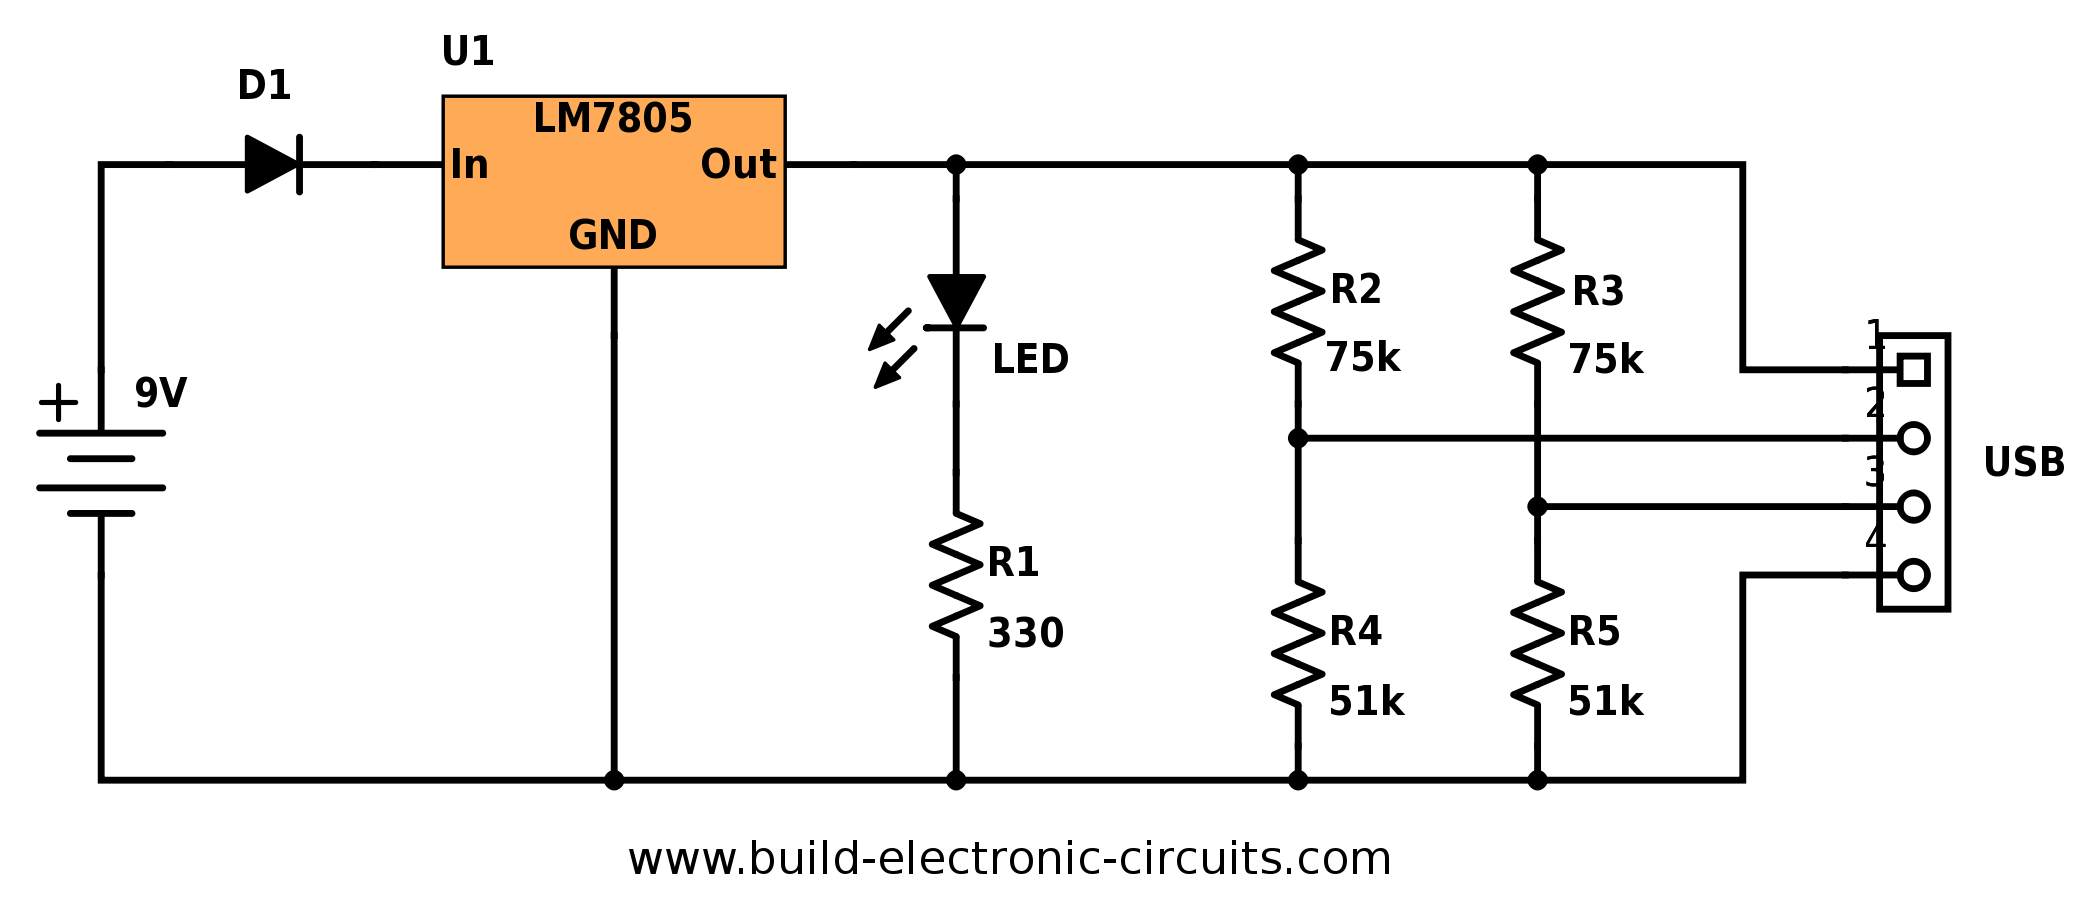 Portable Usb Charger Circuit - Build Electronic Circuits - Usb Charger Single Pole Switch Wiring Diagram